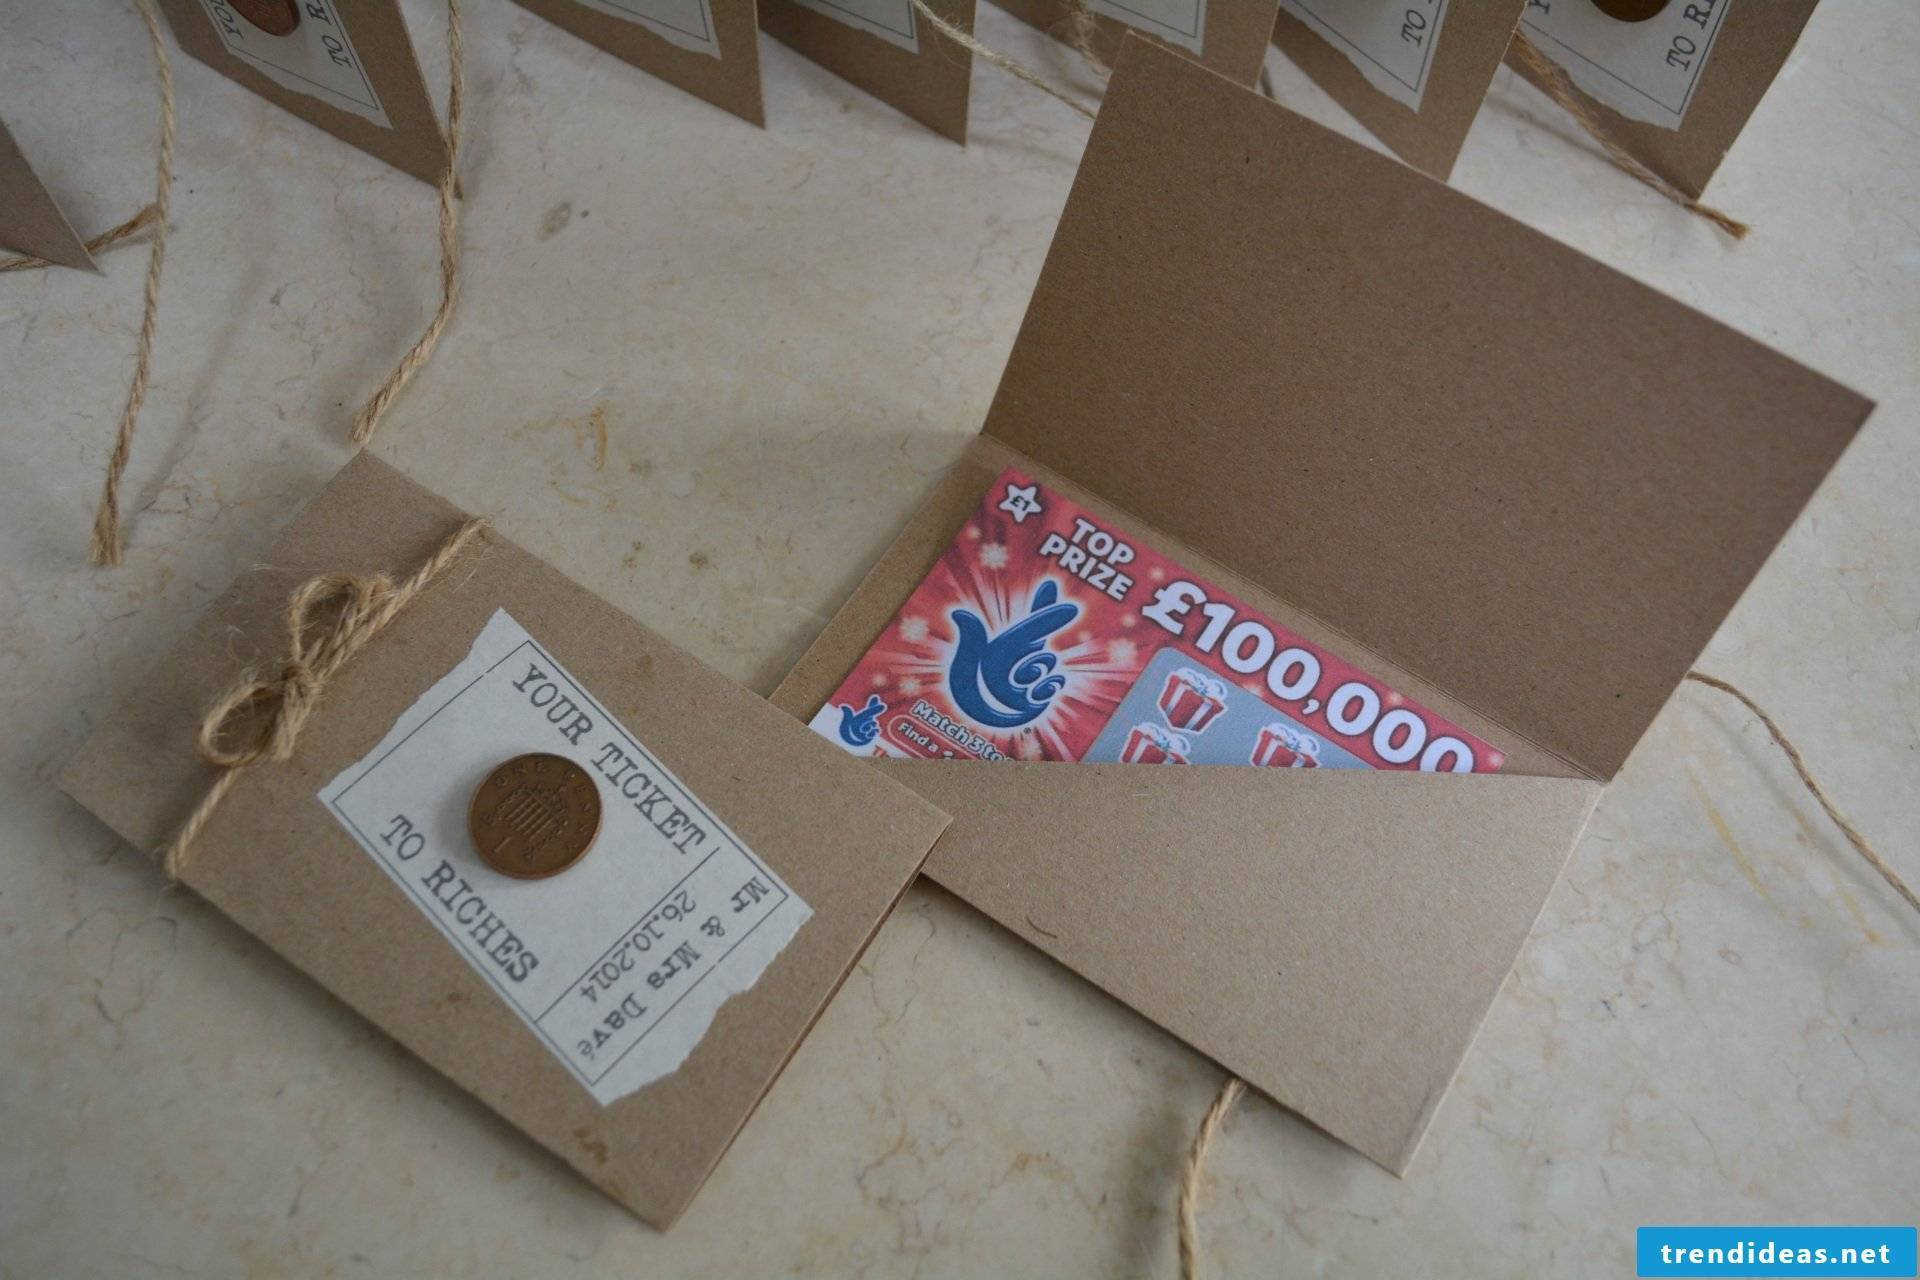 Make a coupon - lottery ticket as a wedding present